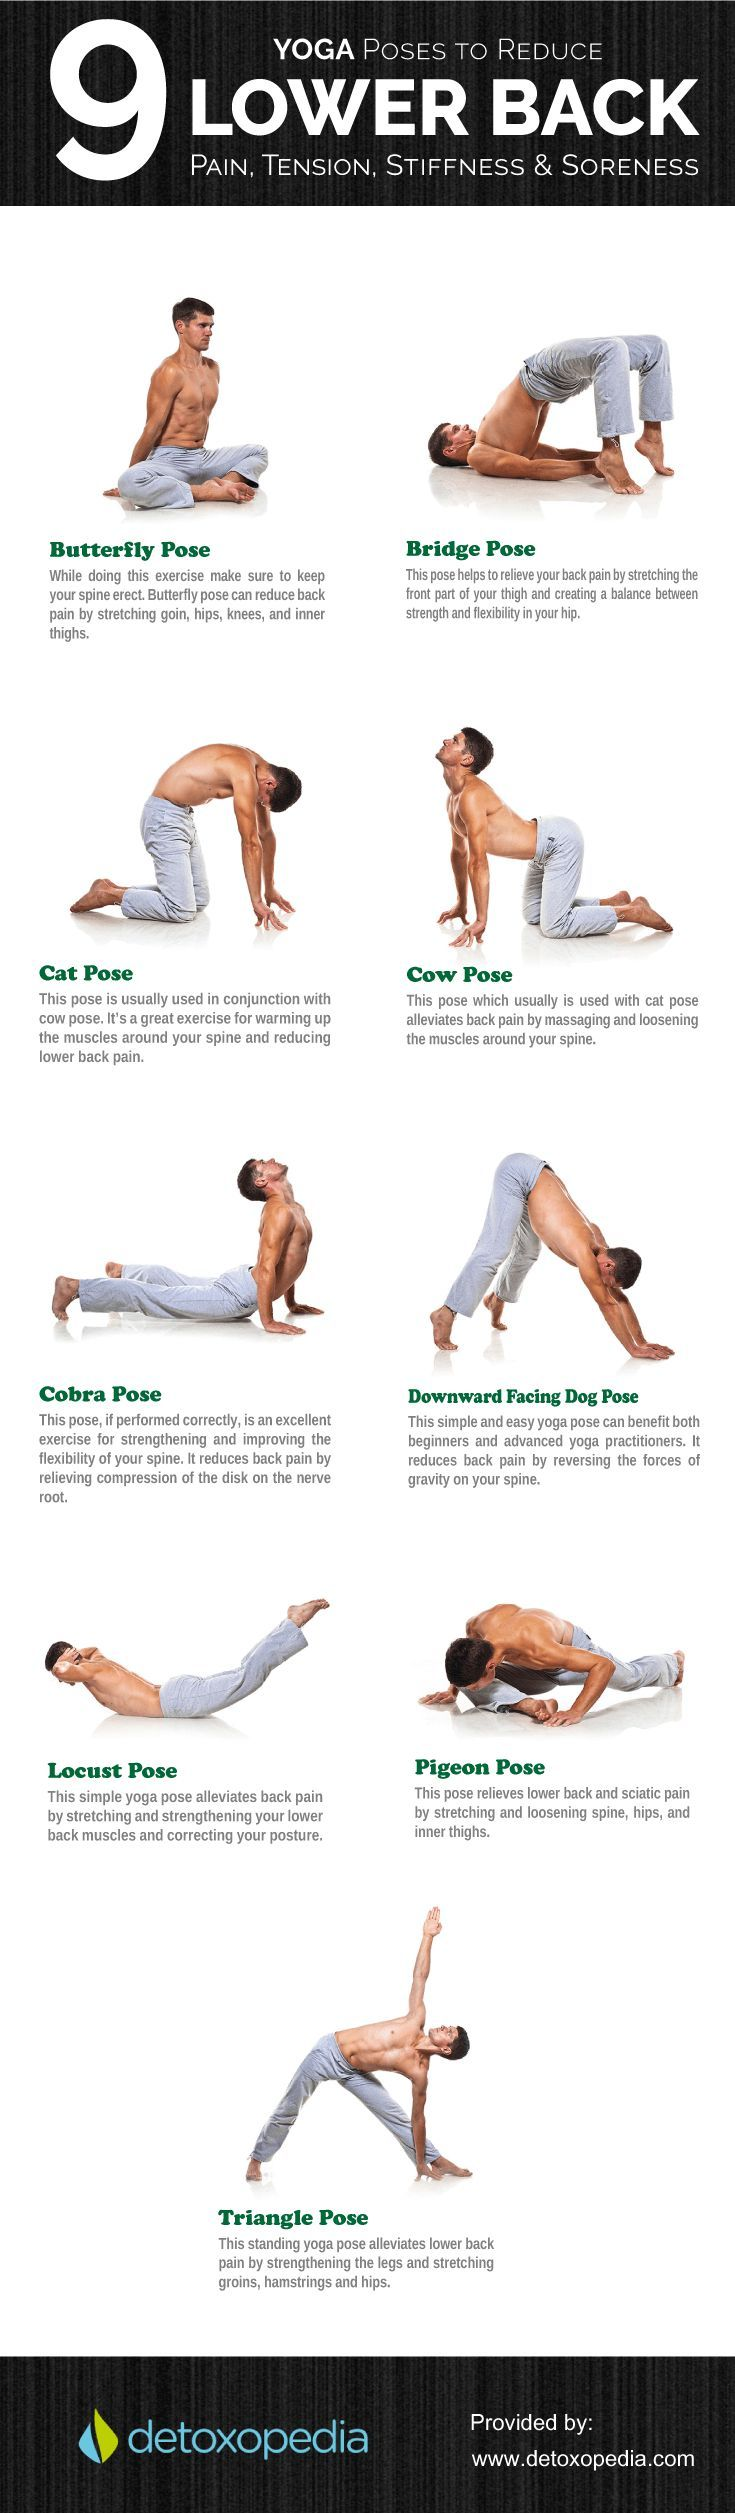 [Infographic] 6 Yoga Poses for Lower Back Pain http://healthyquickly.com 1 Yoga Tip For a Tiny Belly...